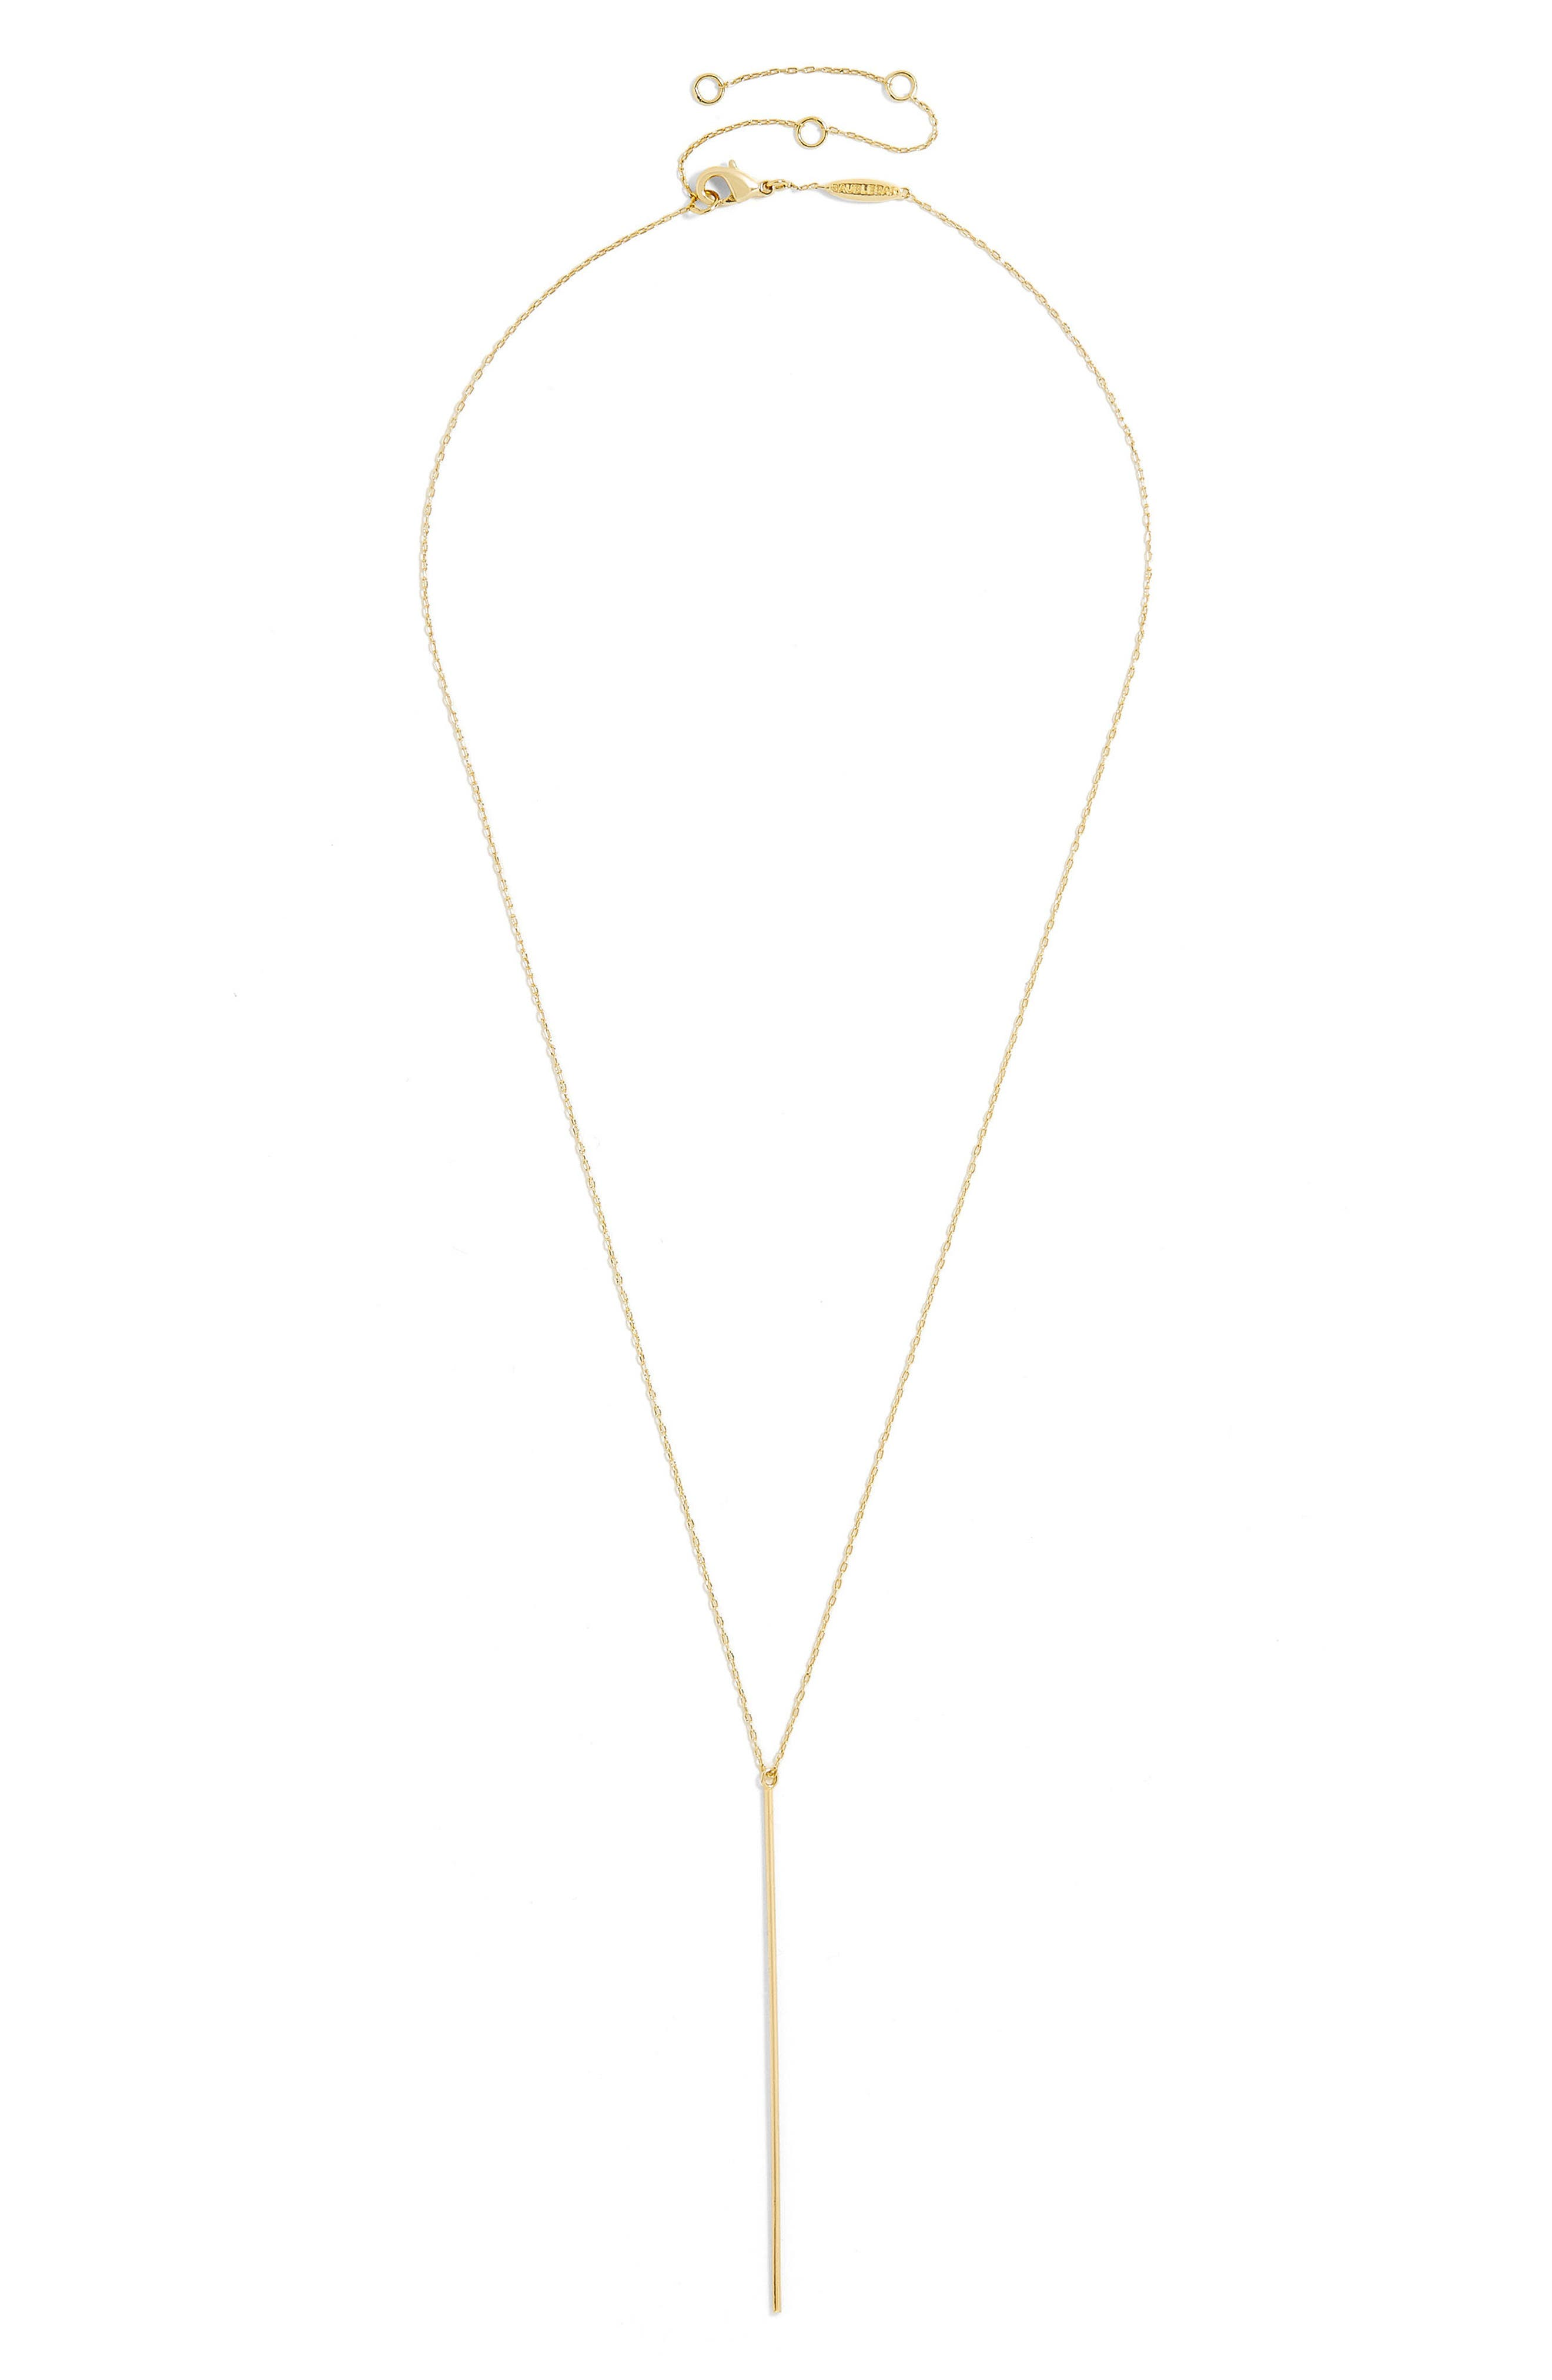 Mara Everyday Fine Layered Necklace,                             Main thumbnail 1, color,                             710